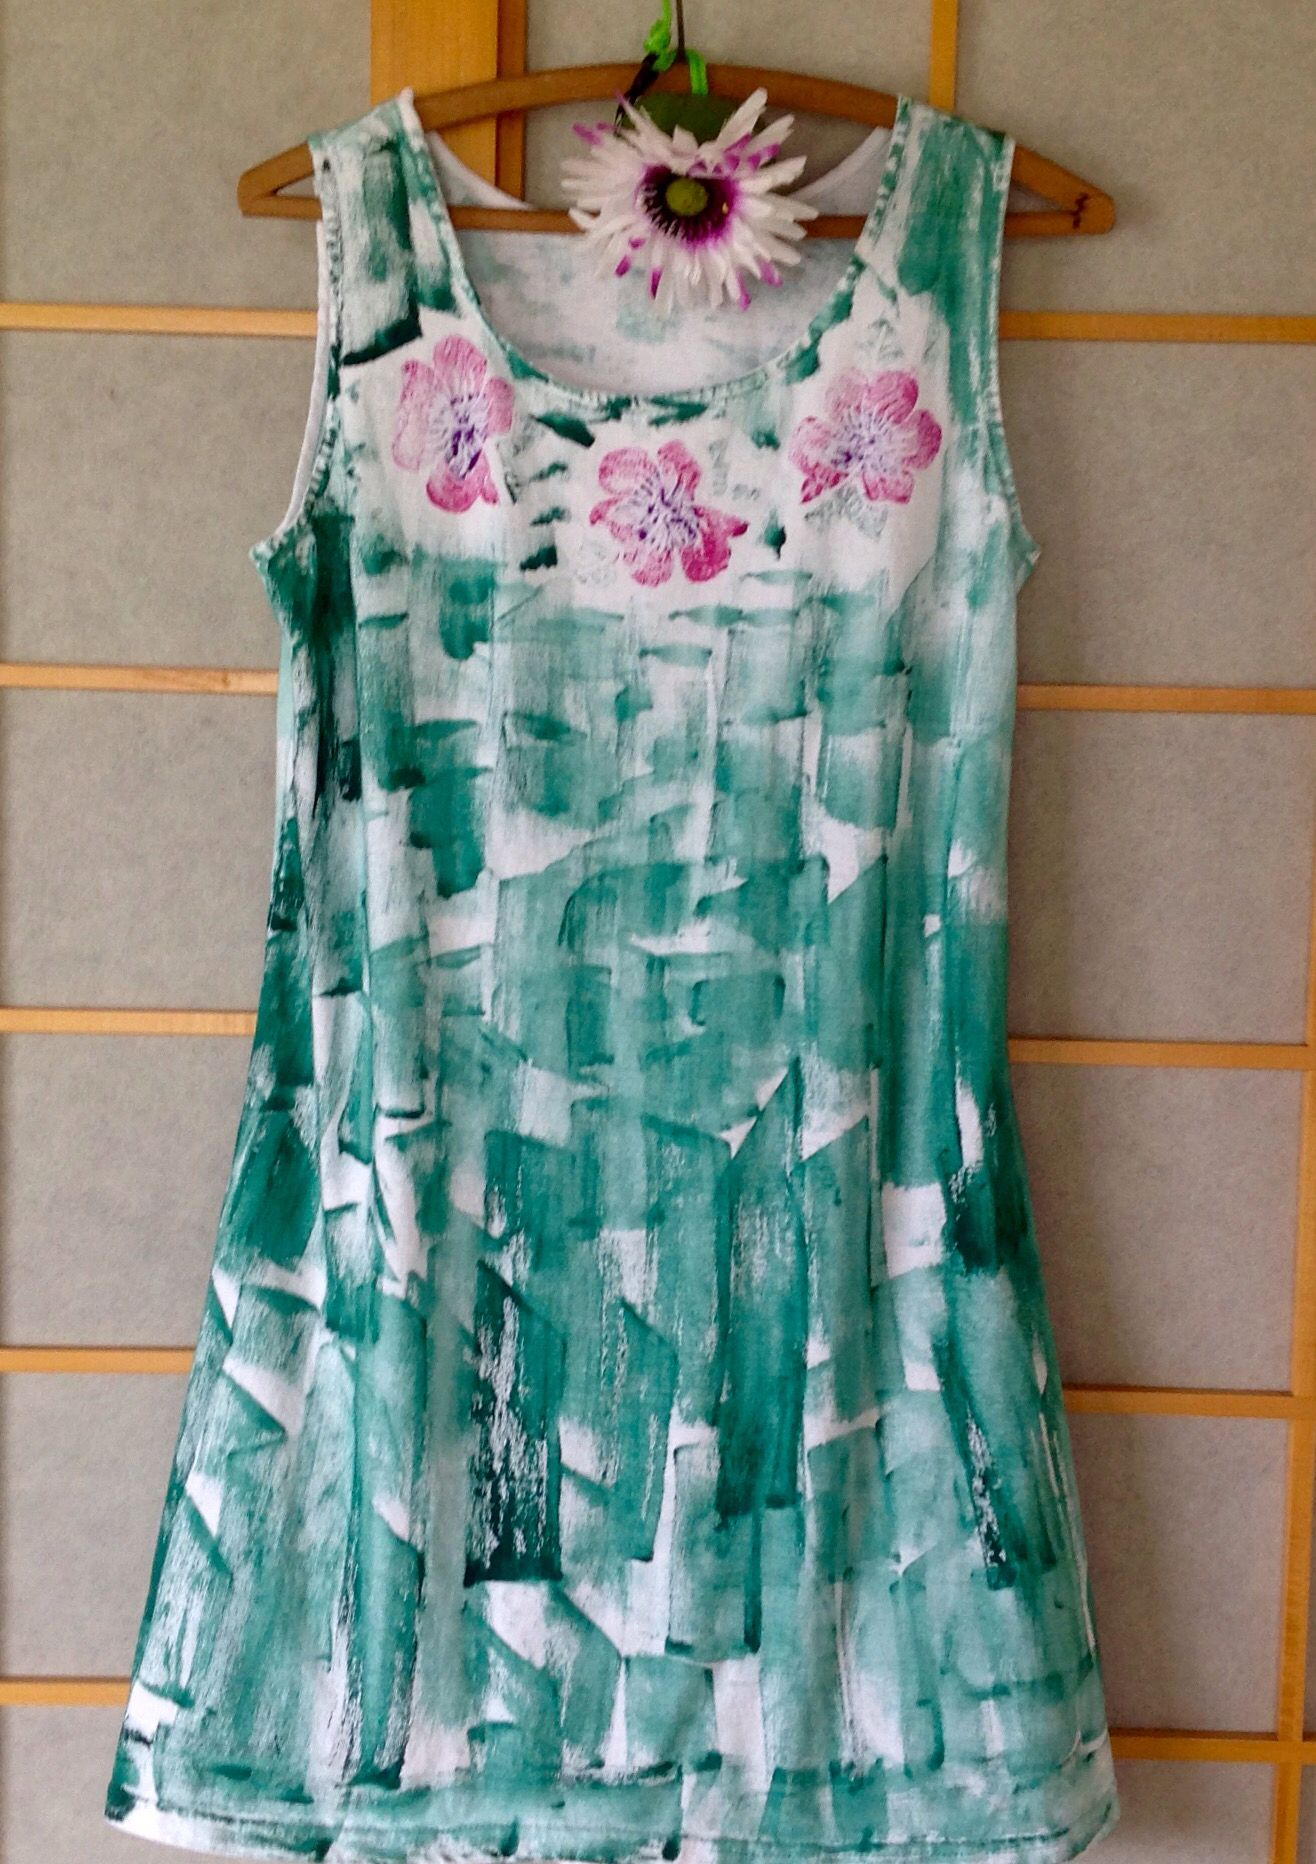 hand painted cotton sun dress in spruce with hibiscus available in size s - 2x